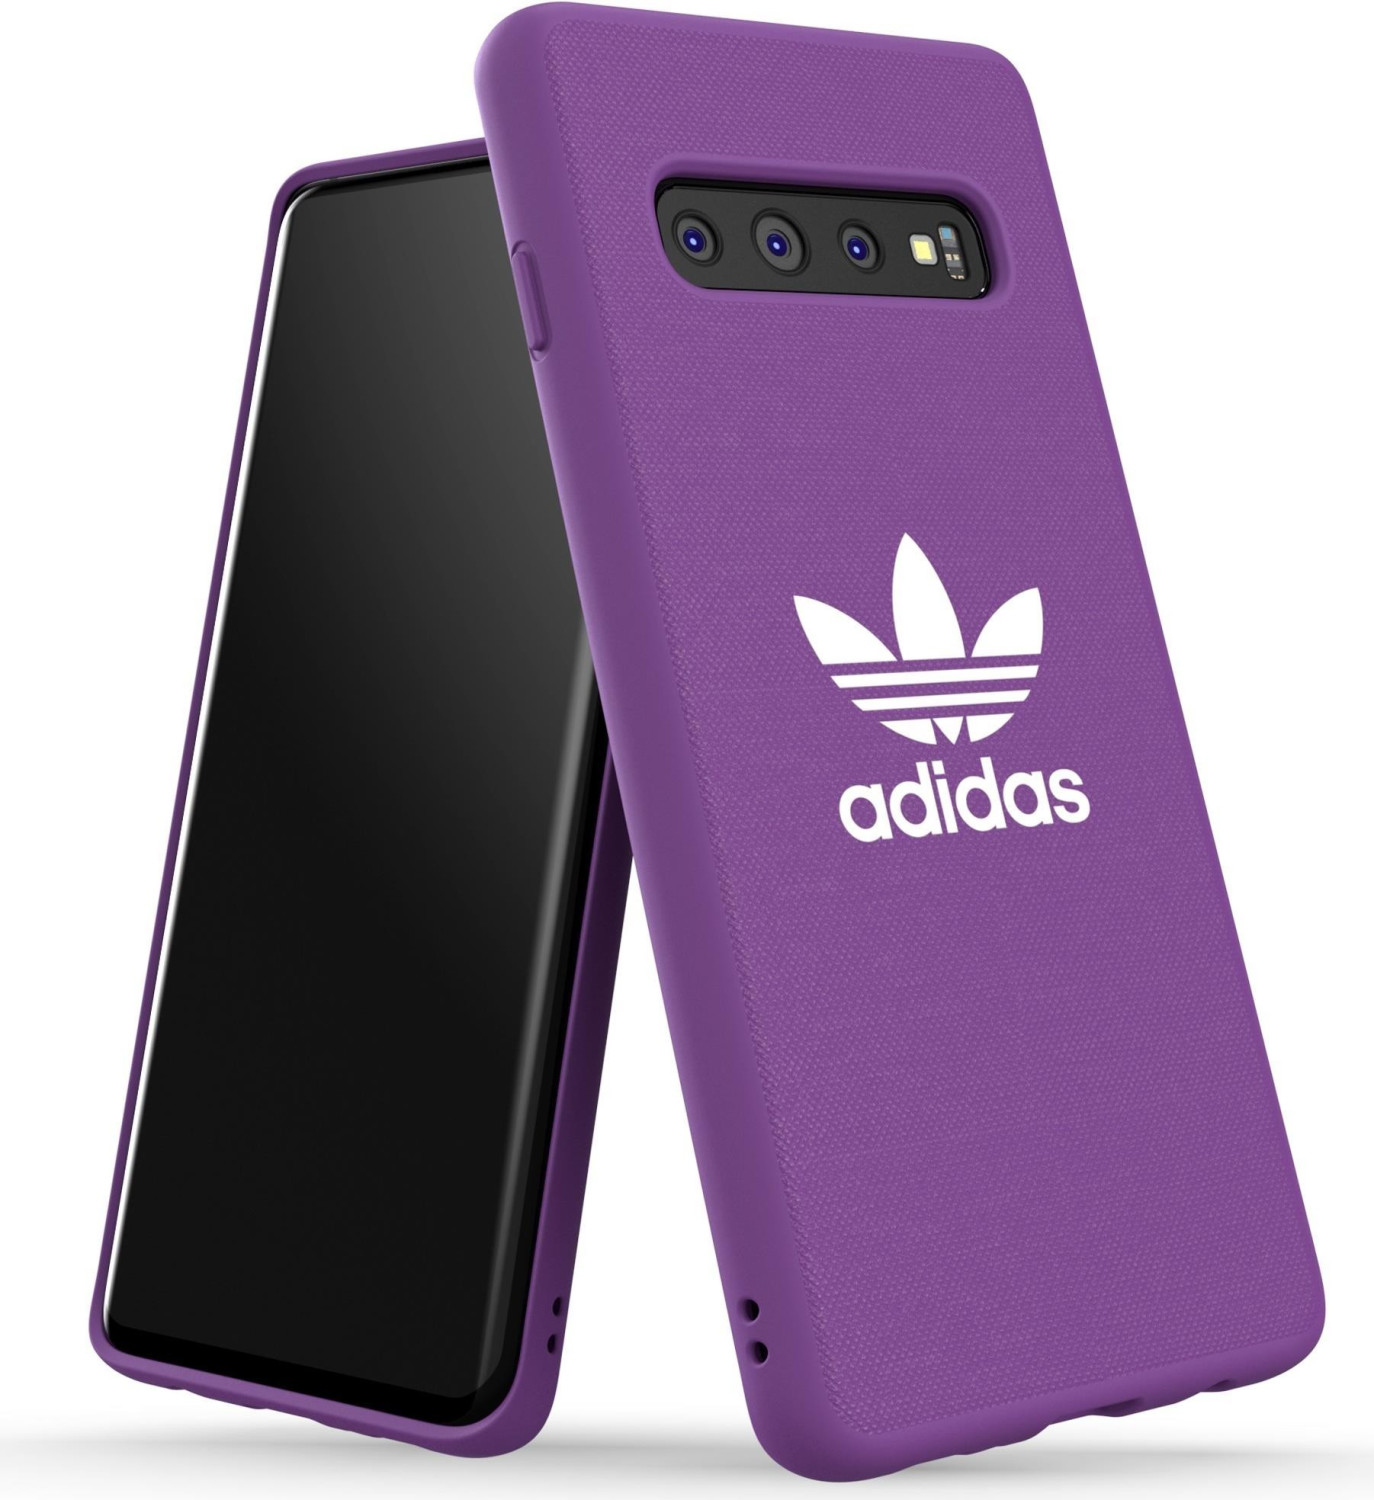 Image of Adidas Moulded Case (Galaxy S10)